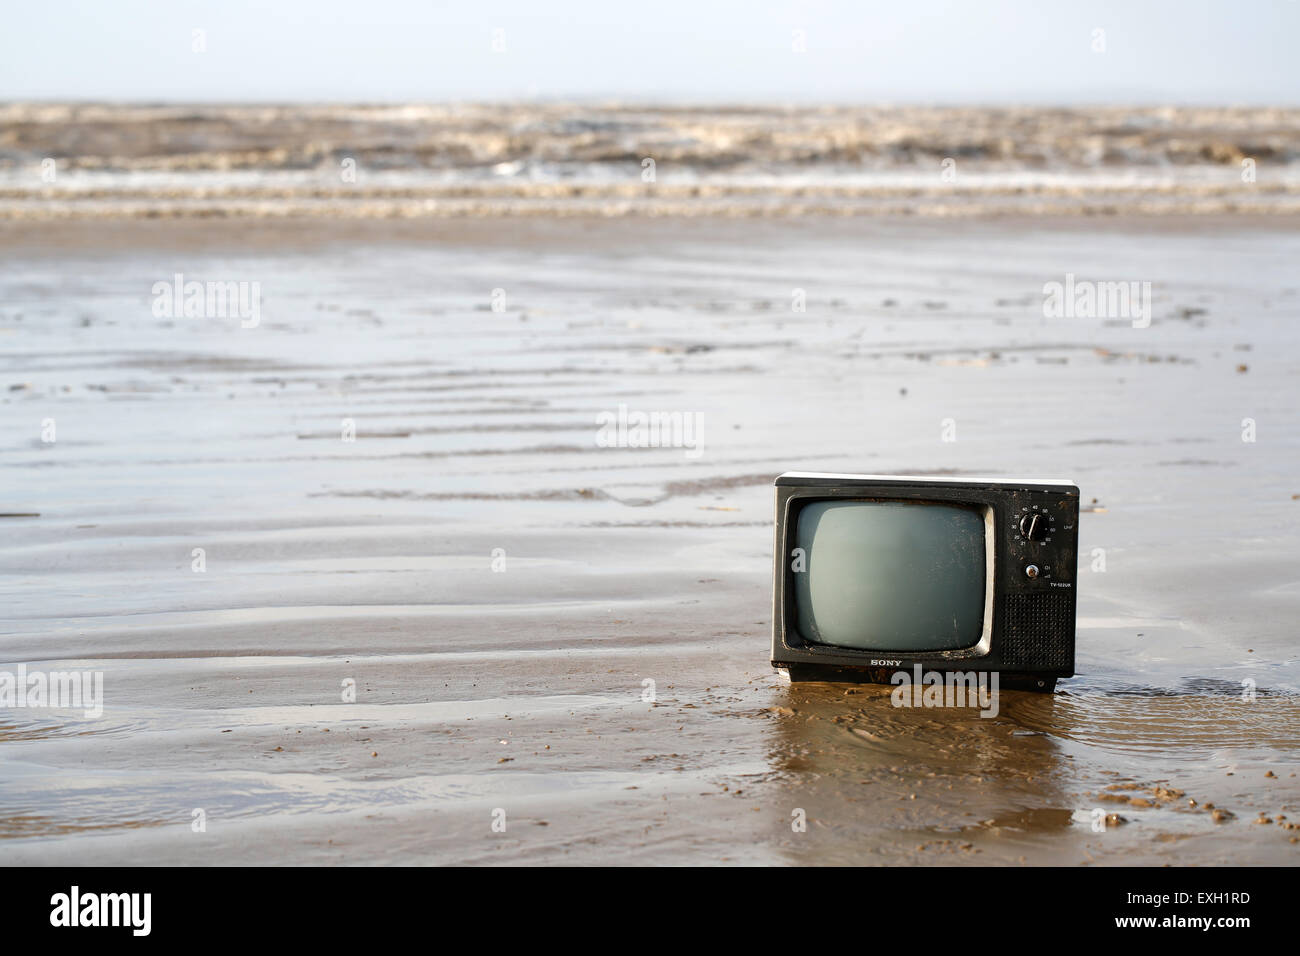 an-discarded-tv-washed-up-onto-a-beach-w